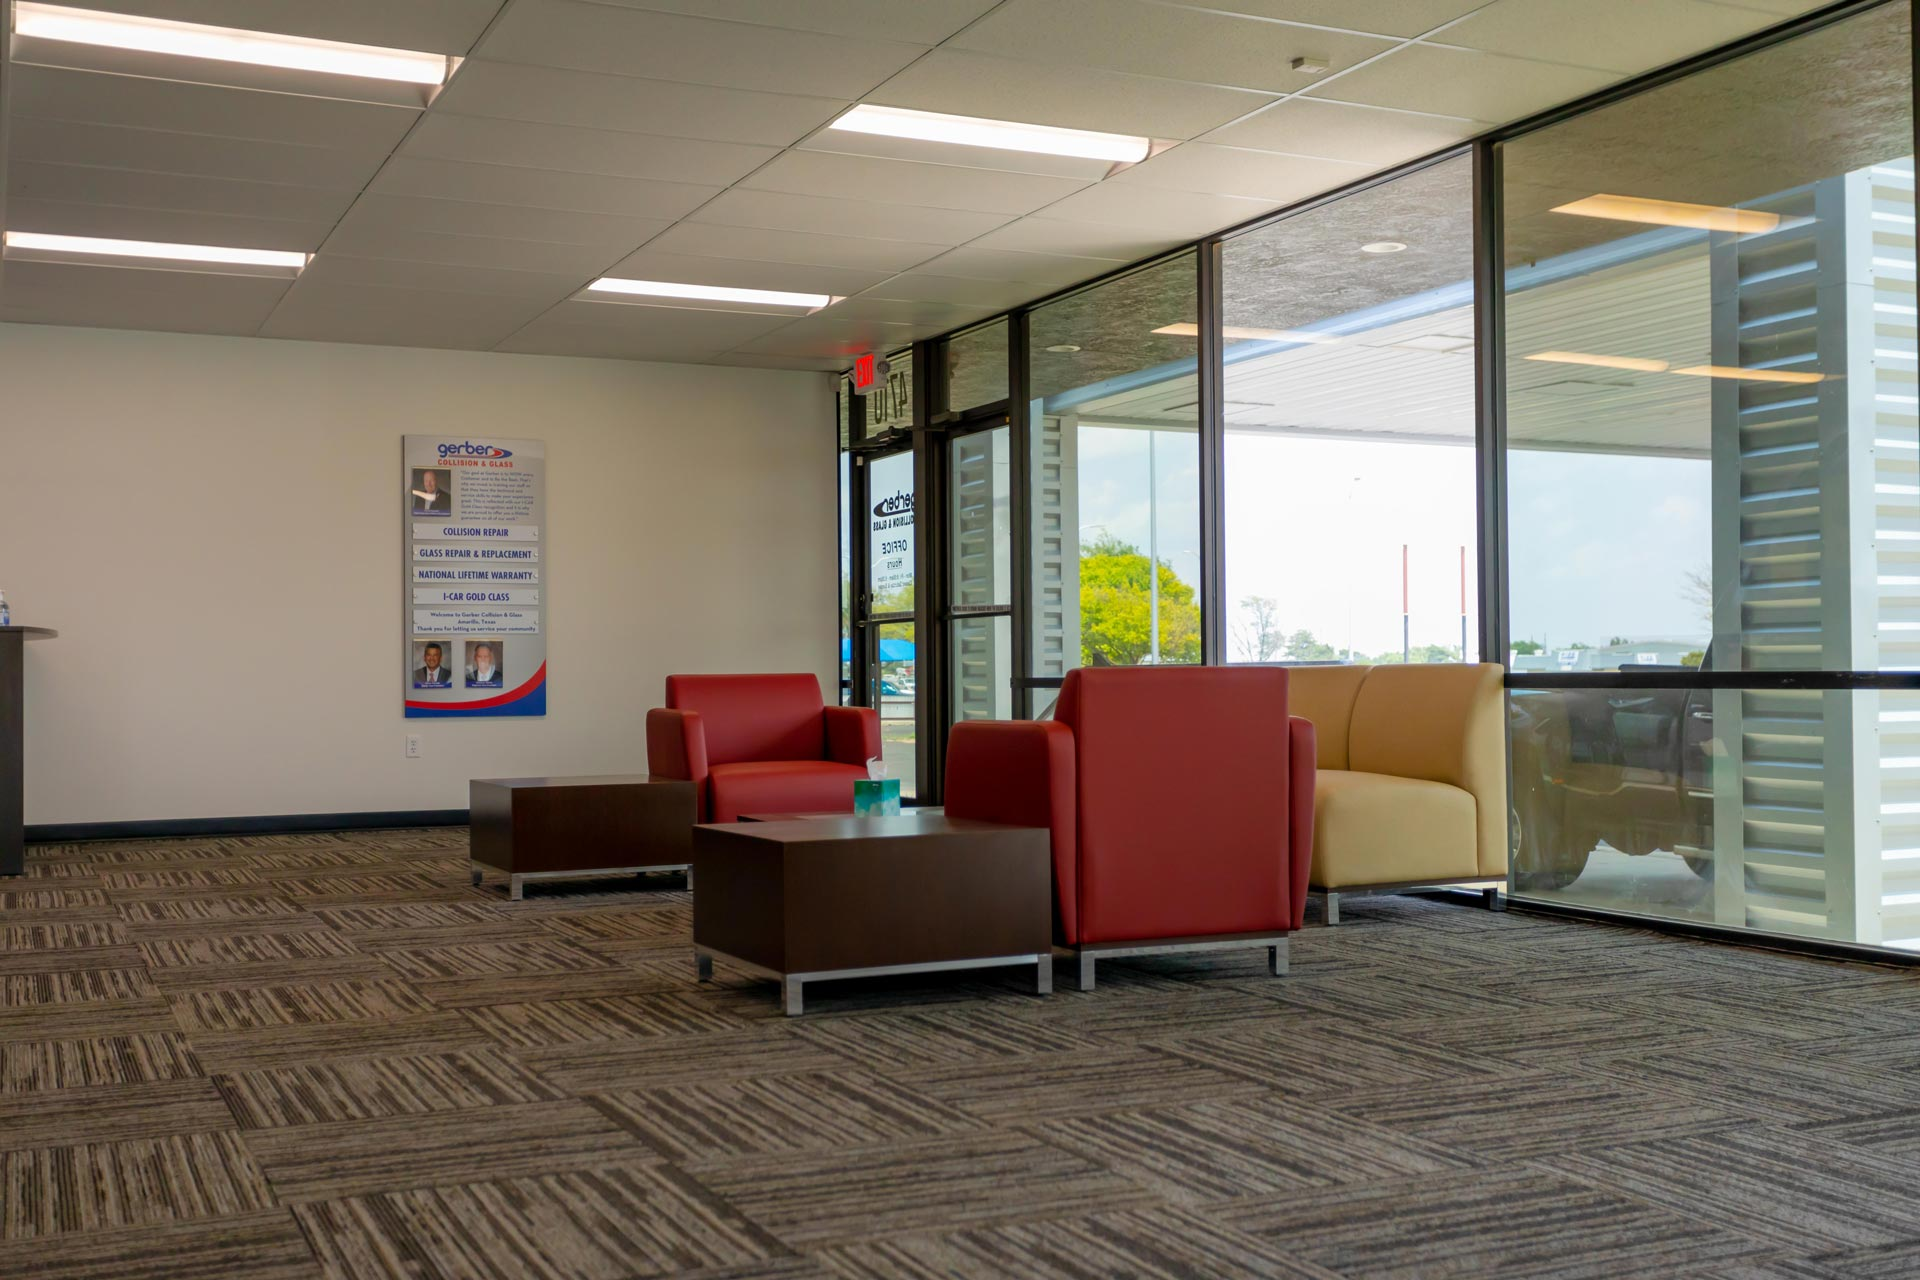 Gerber_colllision_and_glass_Amarillo_ Building_Interior_3_Cole_Stanley